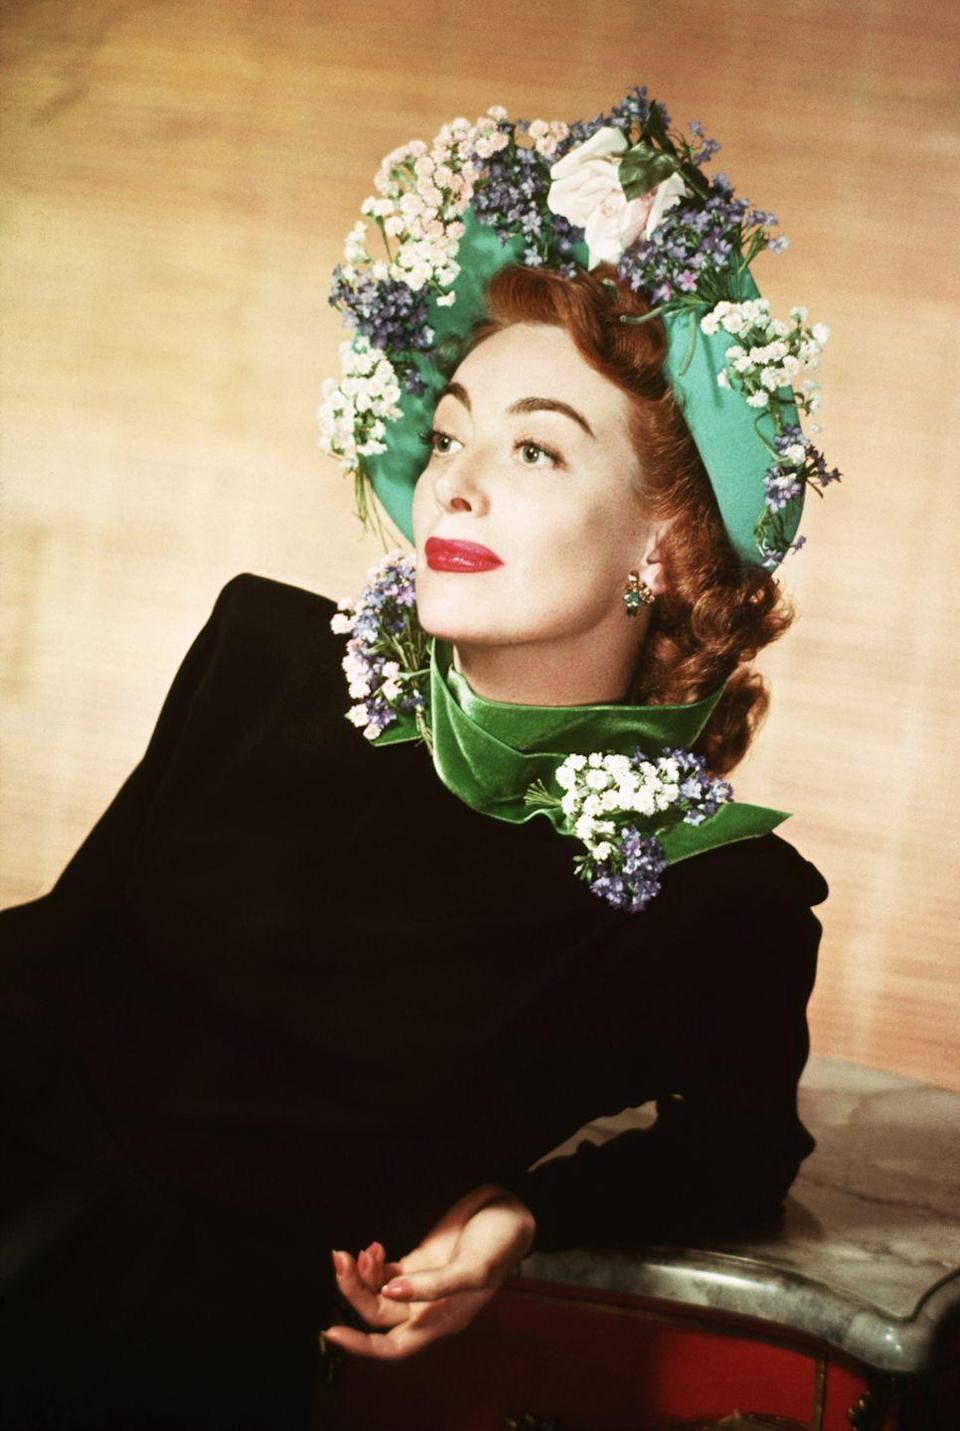 <p>Joan is credited with making arched eyebrows and smeared lipstick popular, as they were part of her signature style. </p>